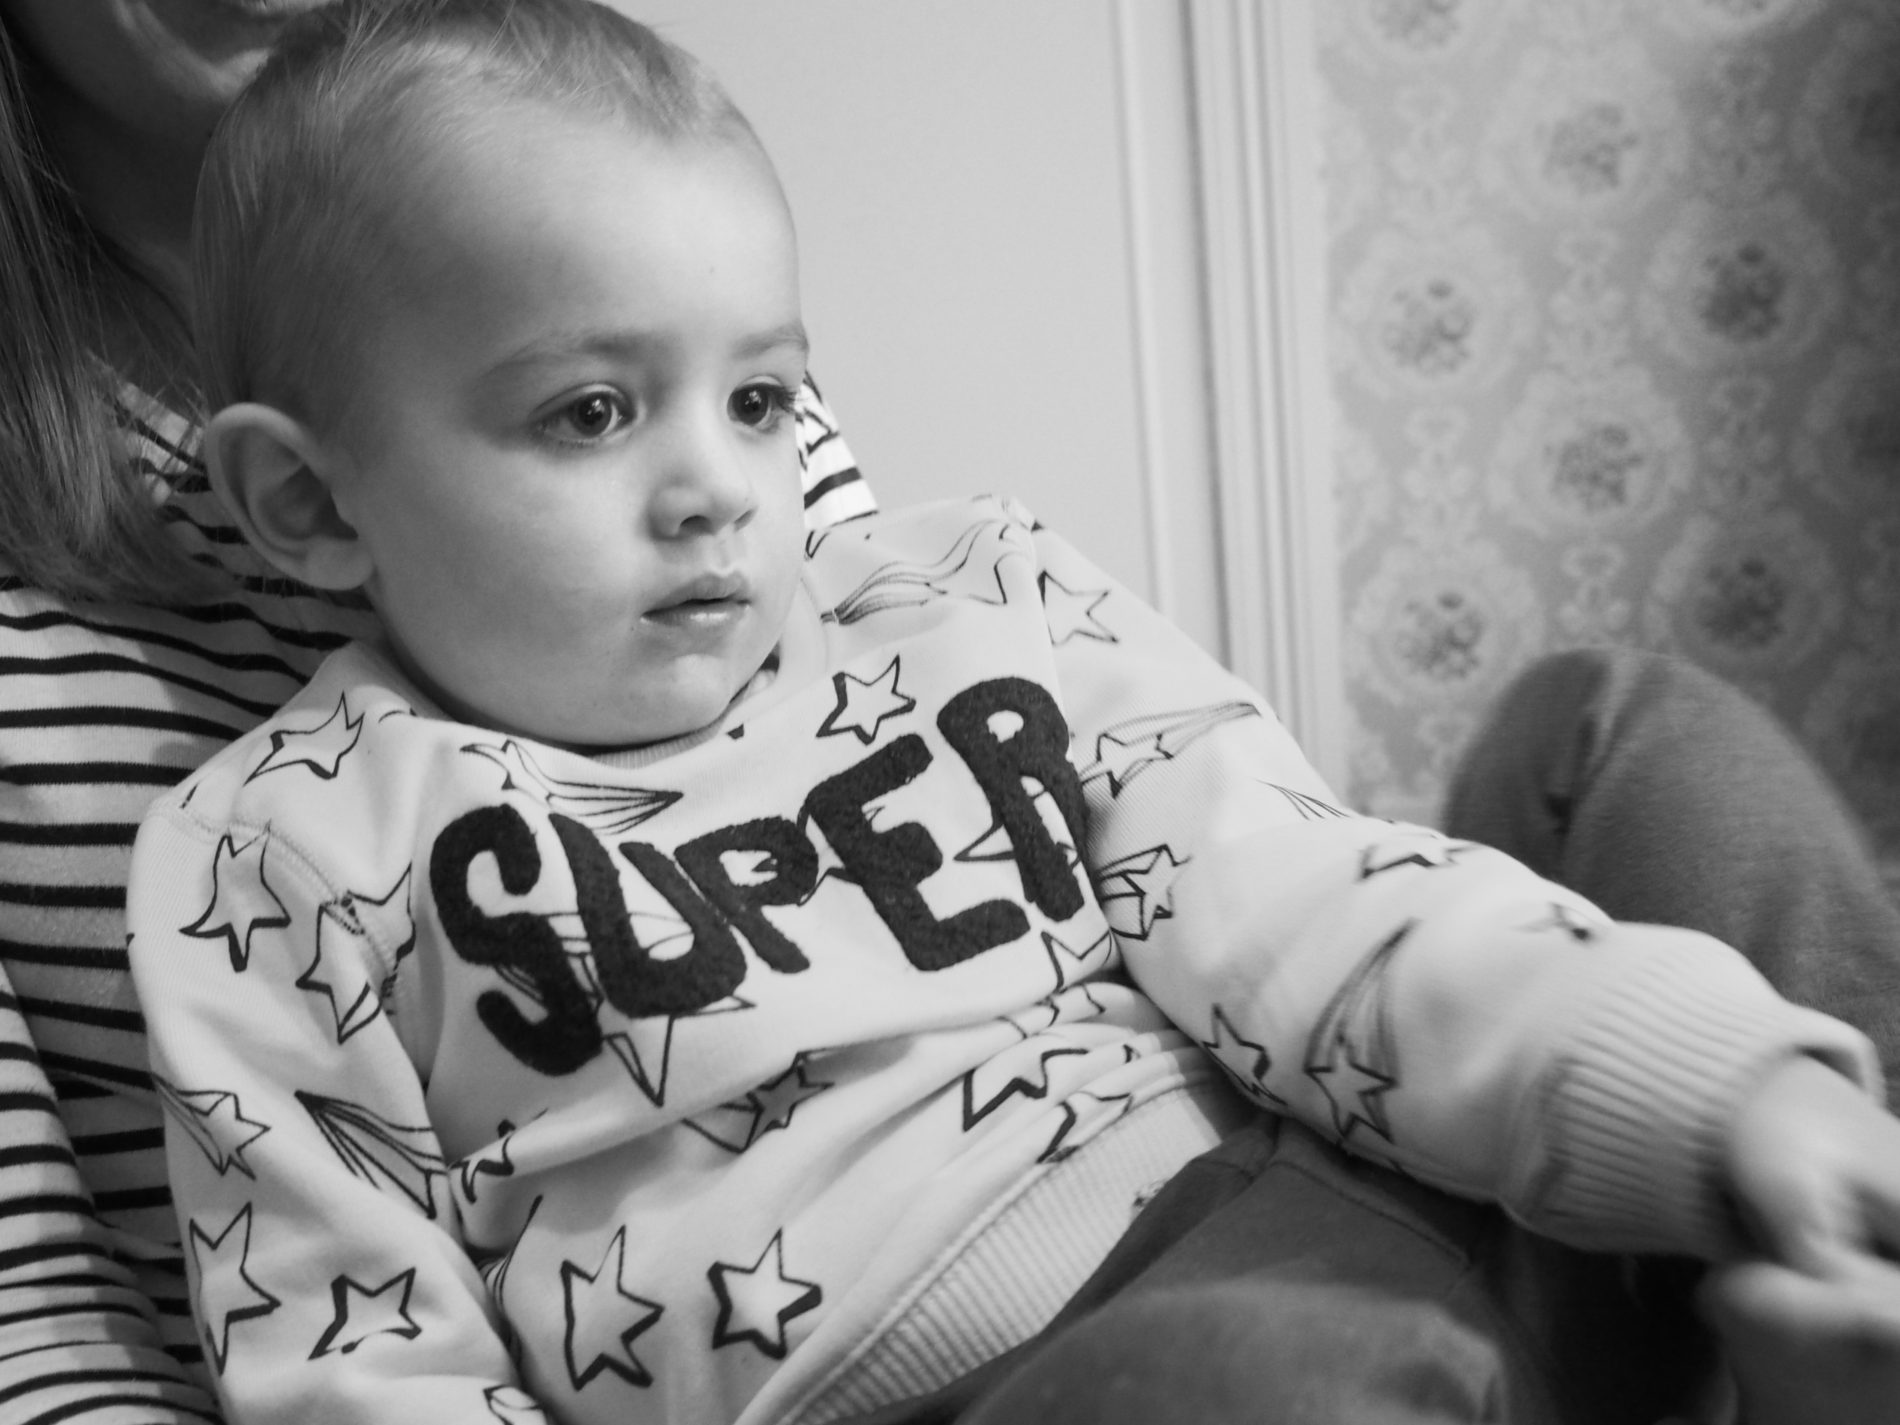 Engrossed in Toy Story